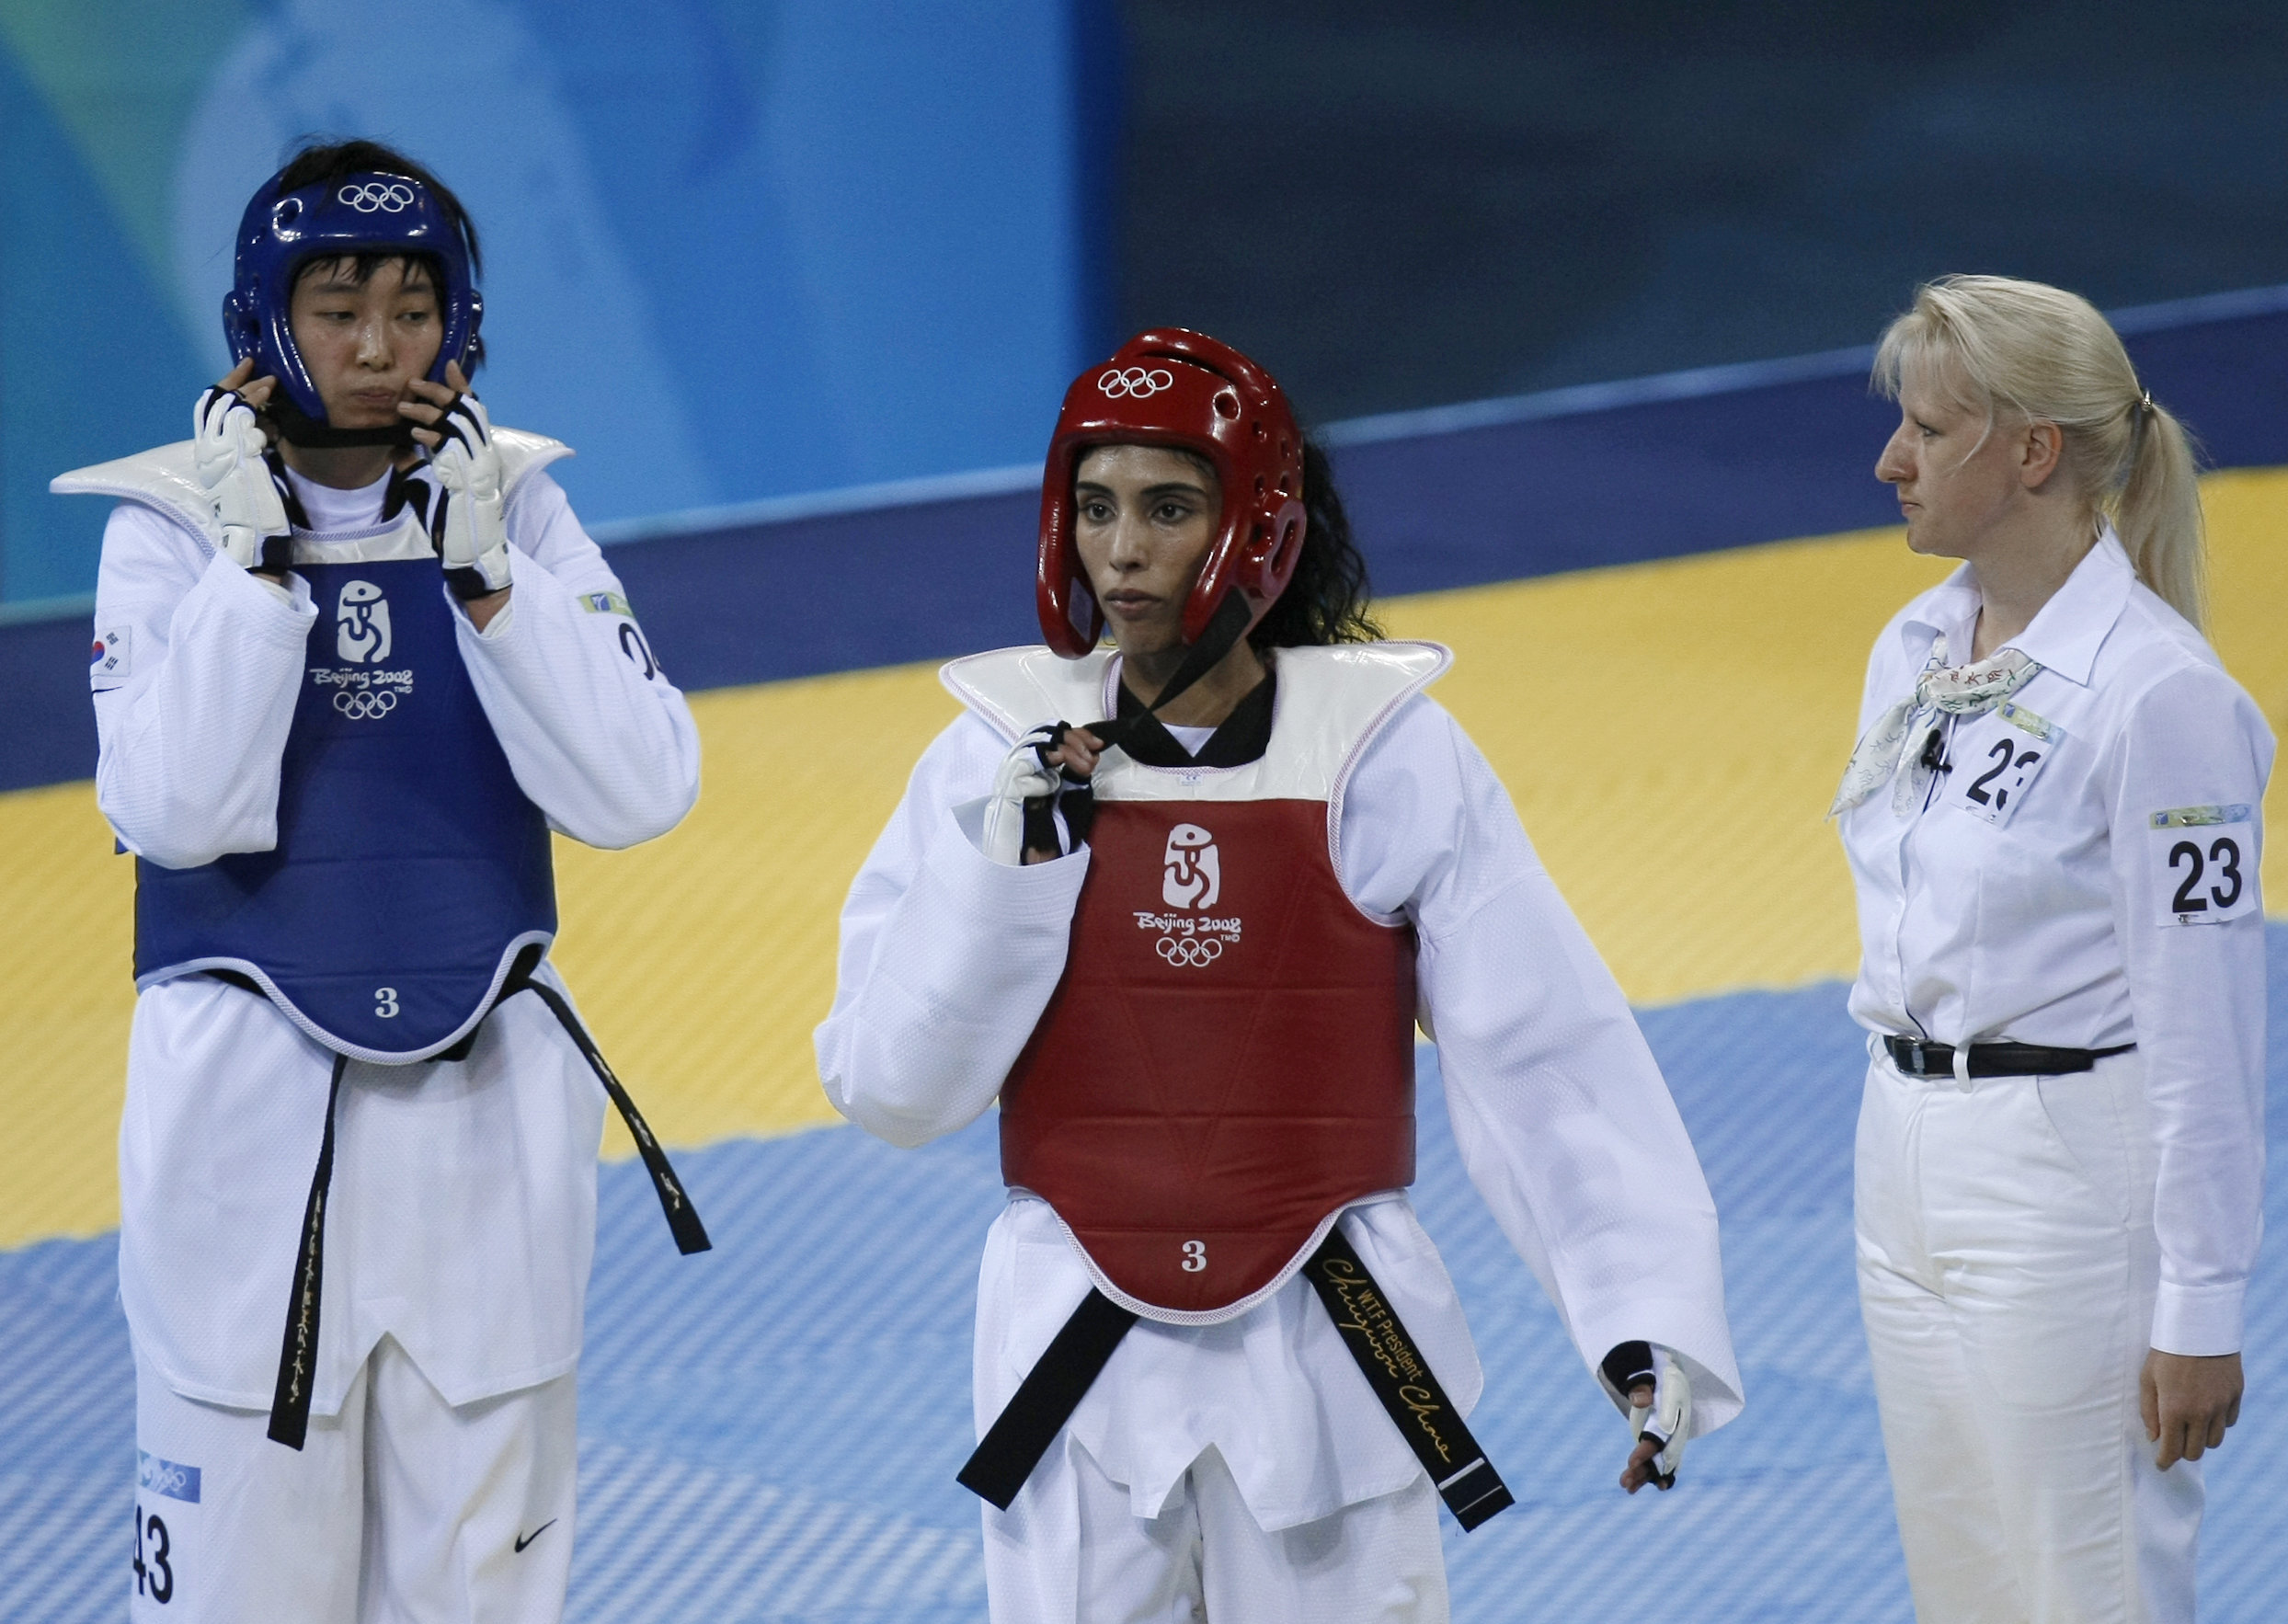 United Arab Emirates Princess Sheikh Maitha Almaktoum (C) walks after her match with Kyungseon Hwang of South Korea (L) during their women's -67 kg taekwondo priliminary at the 2008 Beijing Olympic Games in Beijing on August 22, 2008